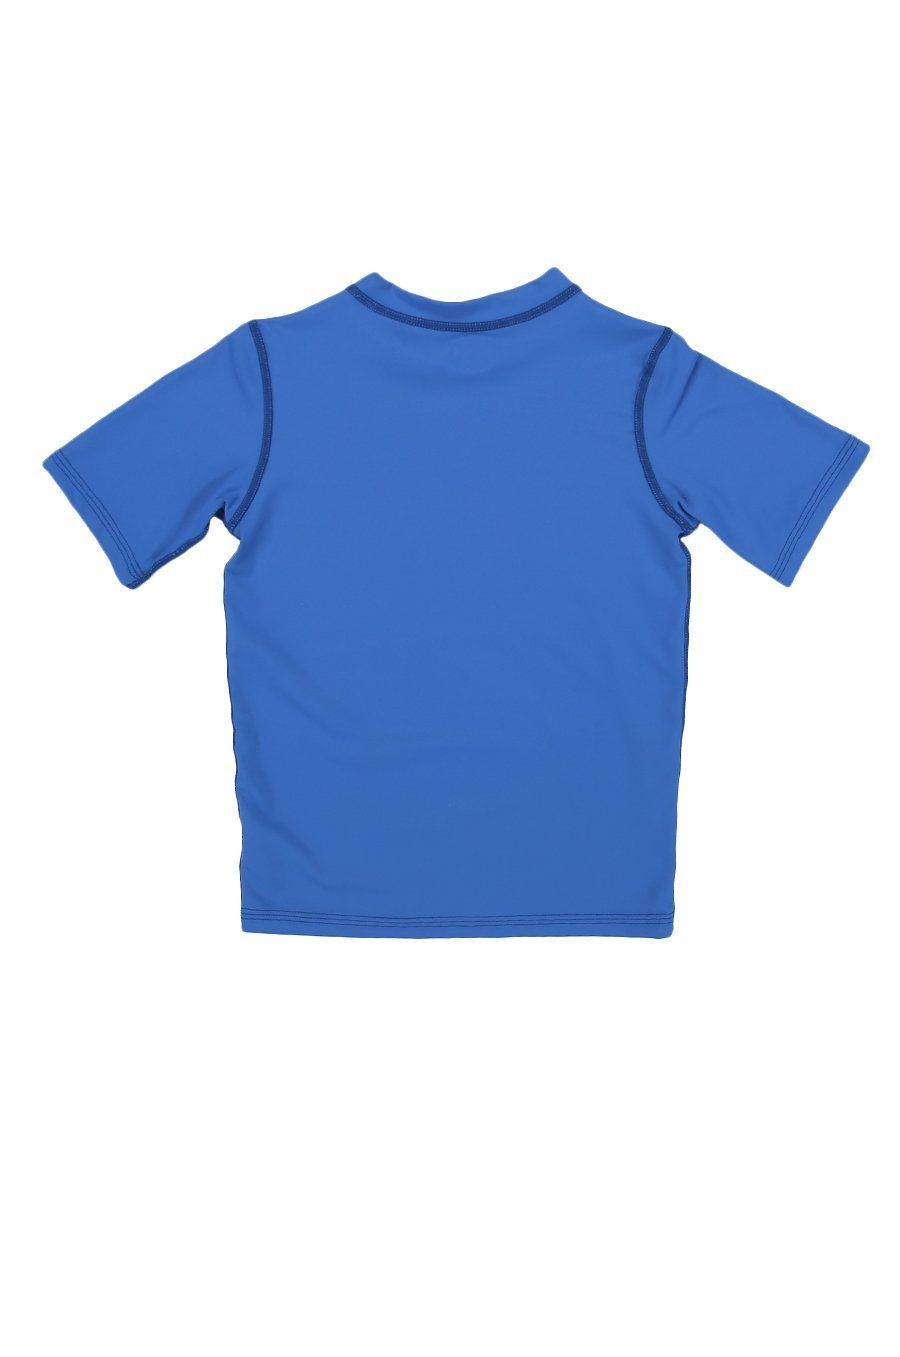 Kids Jaws S/S Rashguard - Royal - Shore